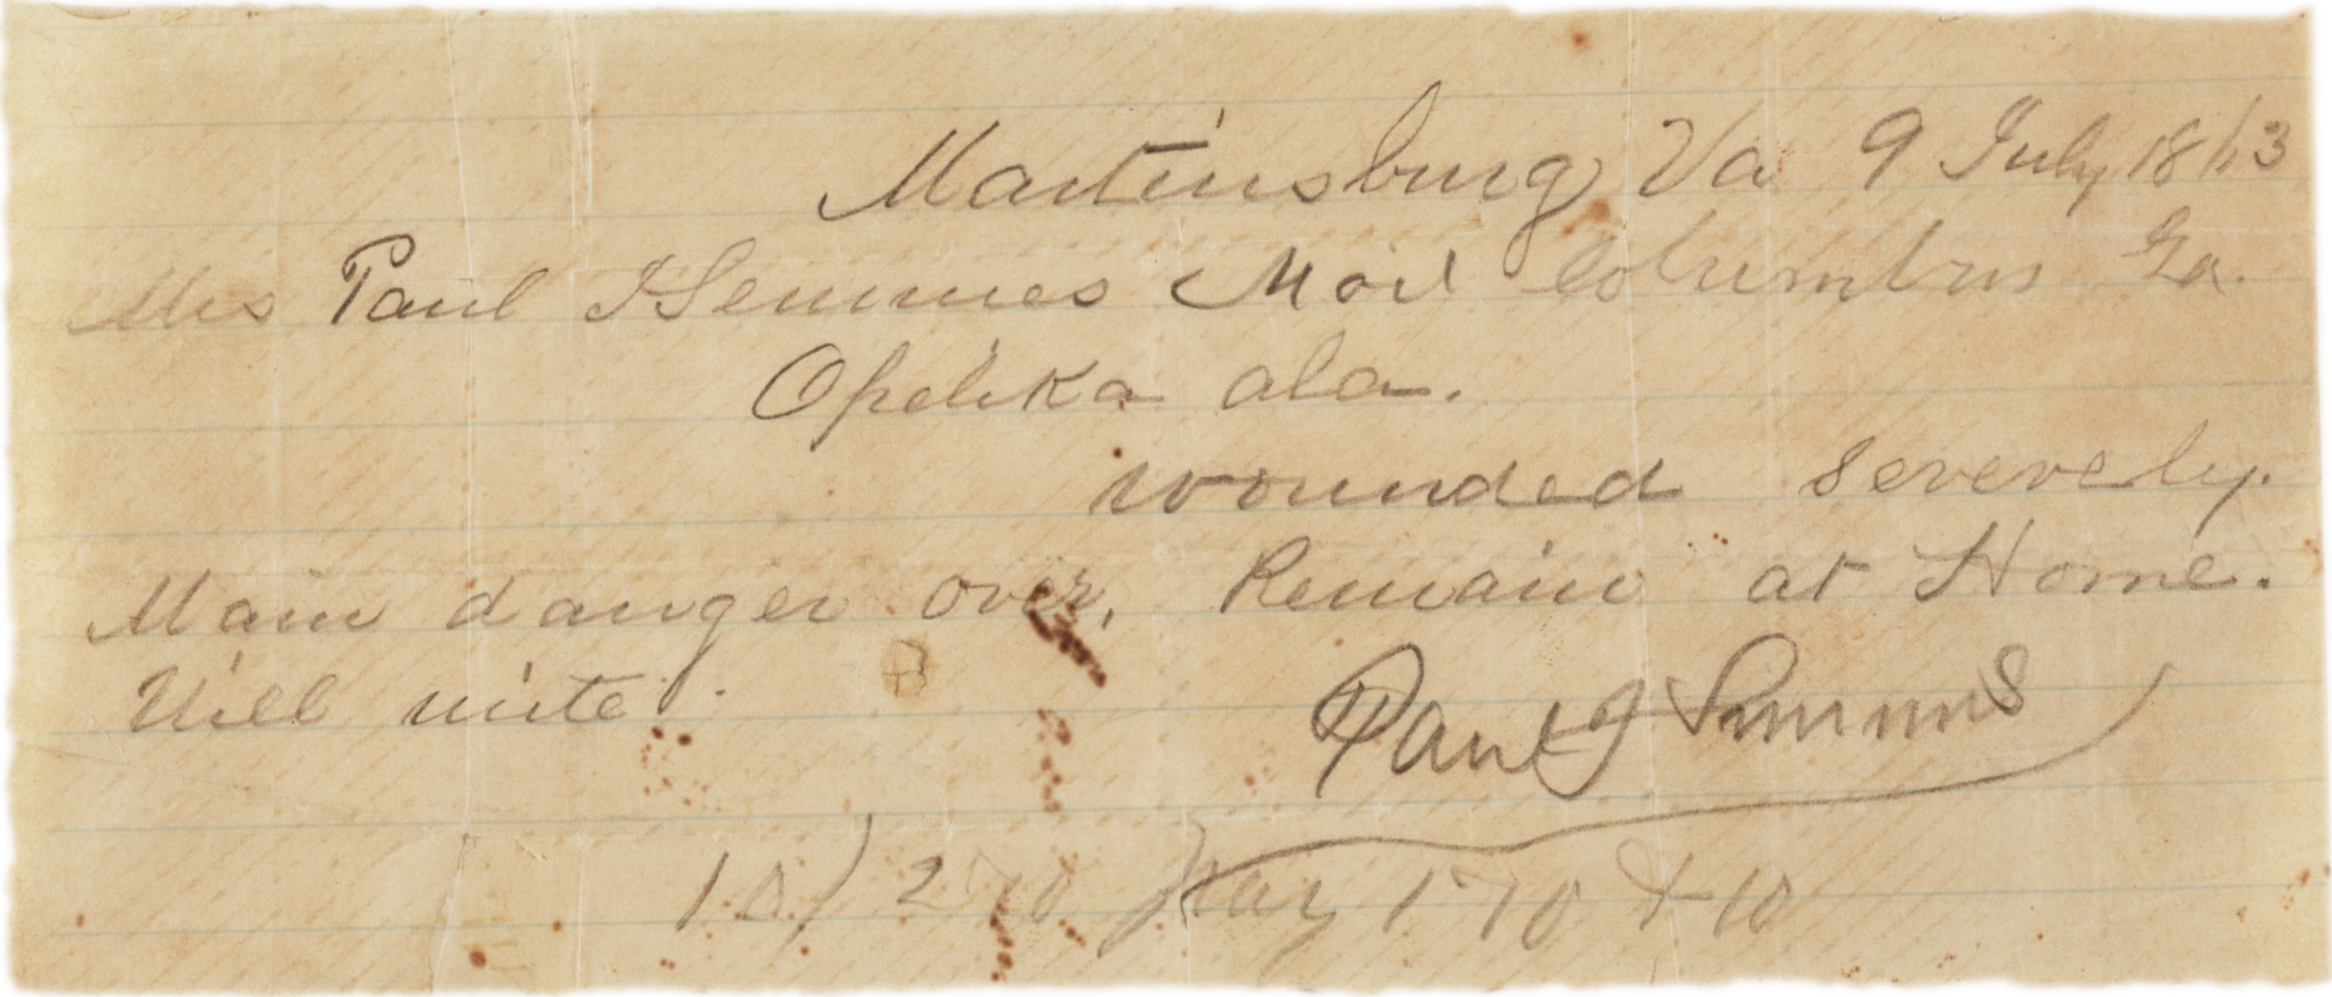 Paul Semmes to Emily Semmes, July 9, 1863. (GLC00458)